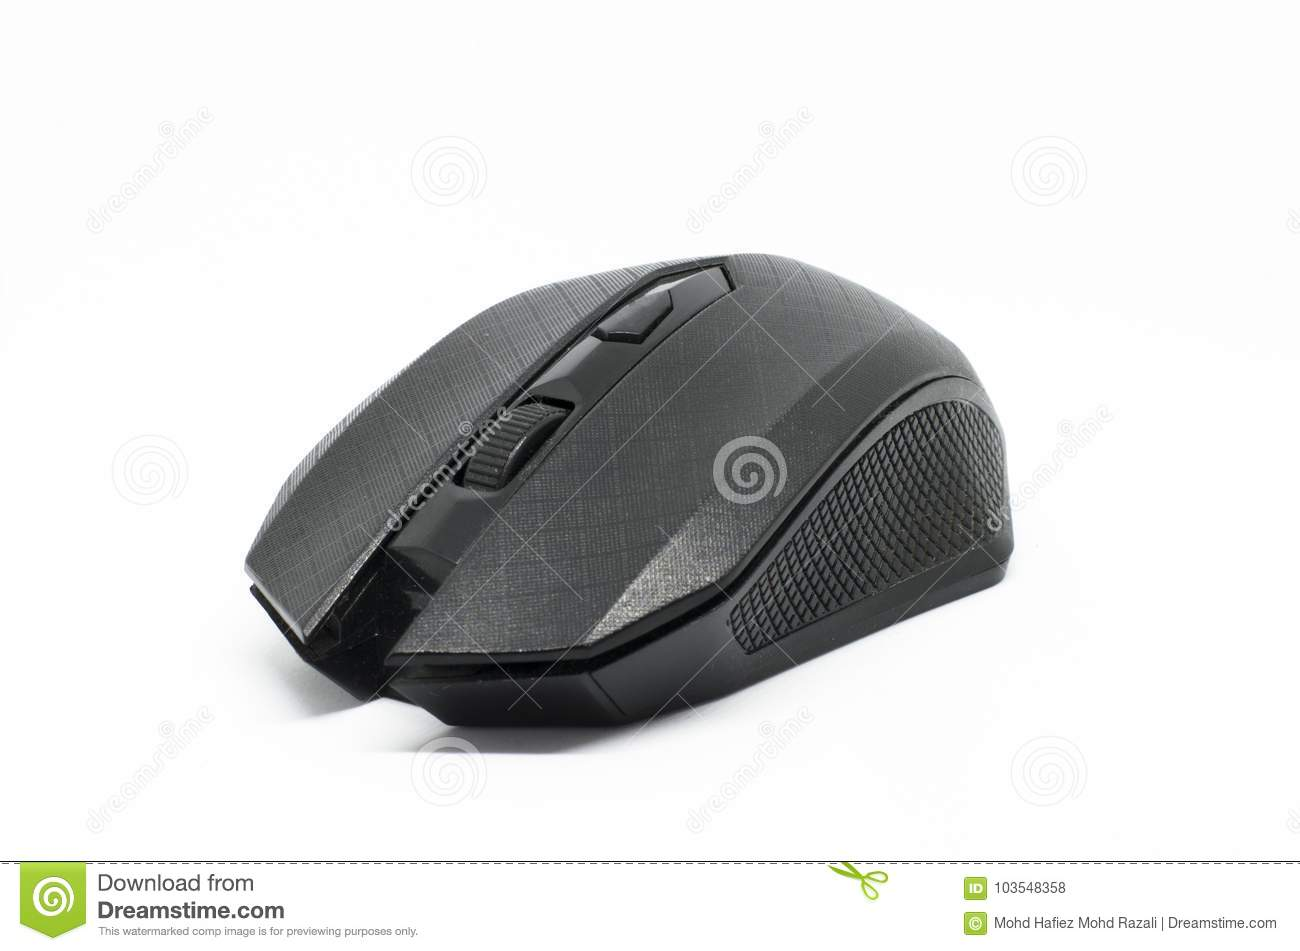 e9ddca3f077 Wireless Mouse Isolated On A White Background Stock Photo - Image of ...